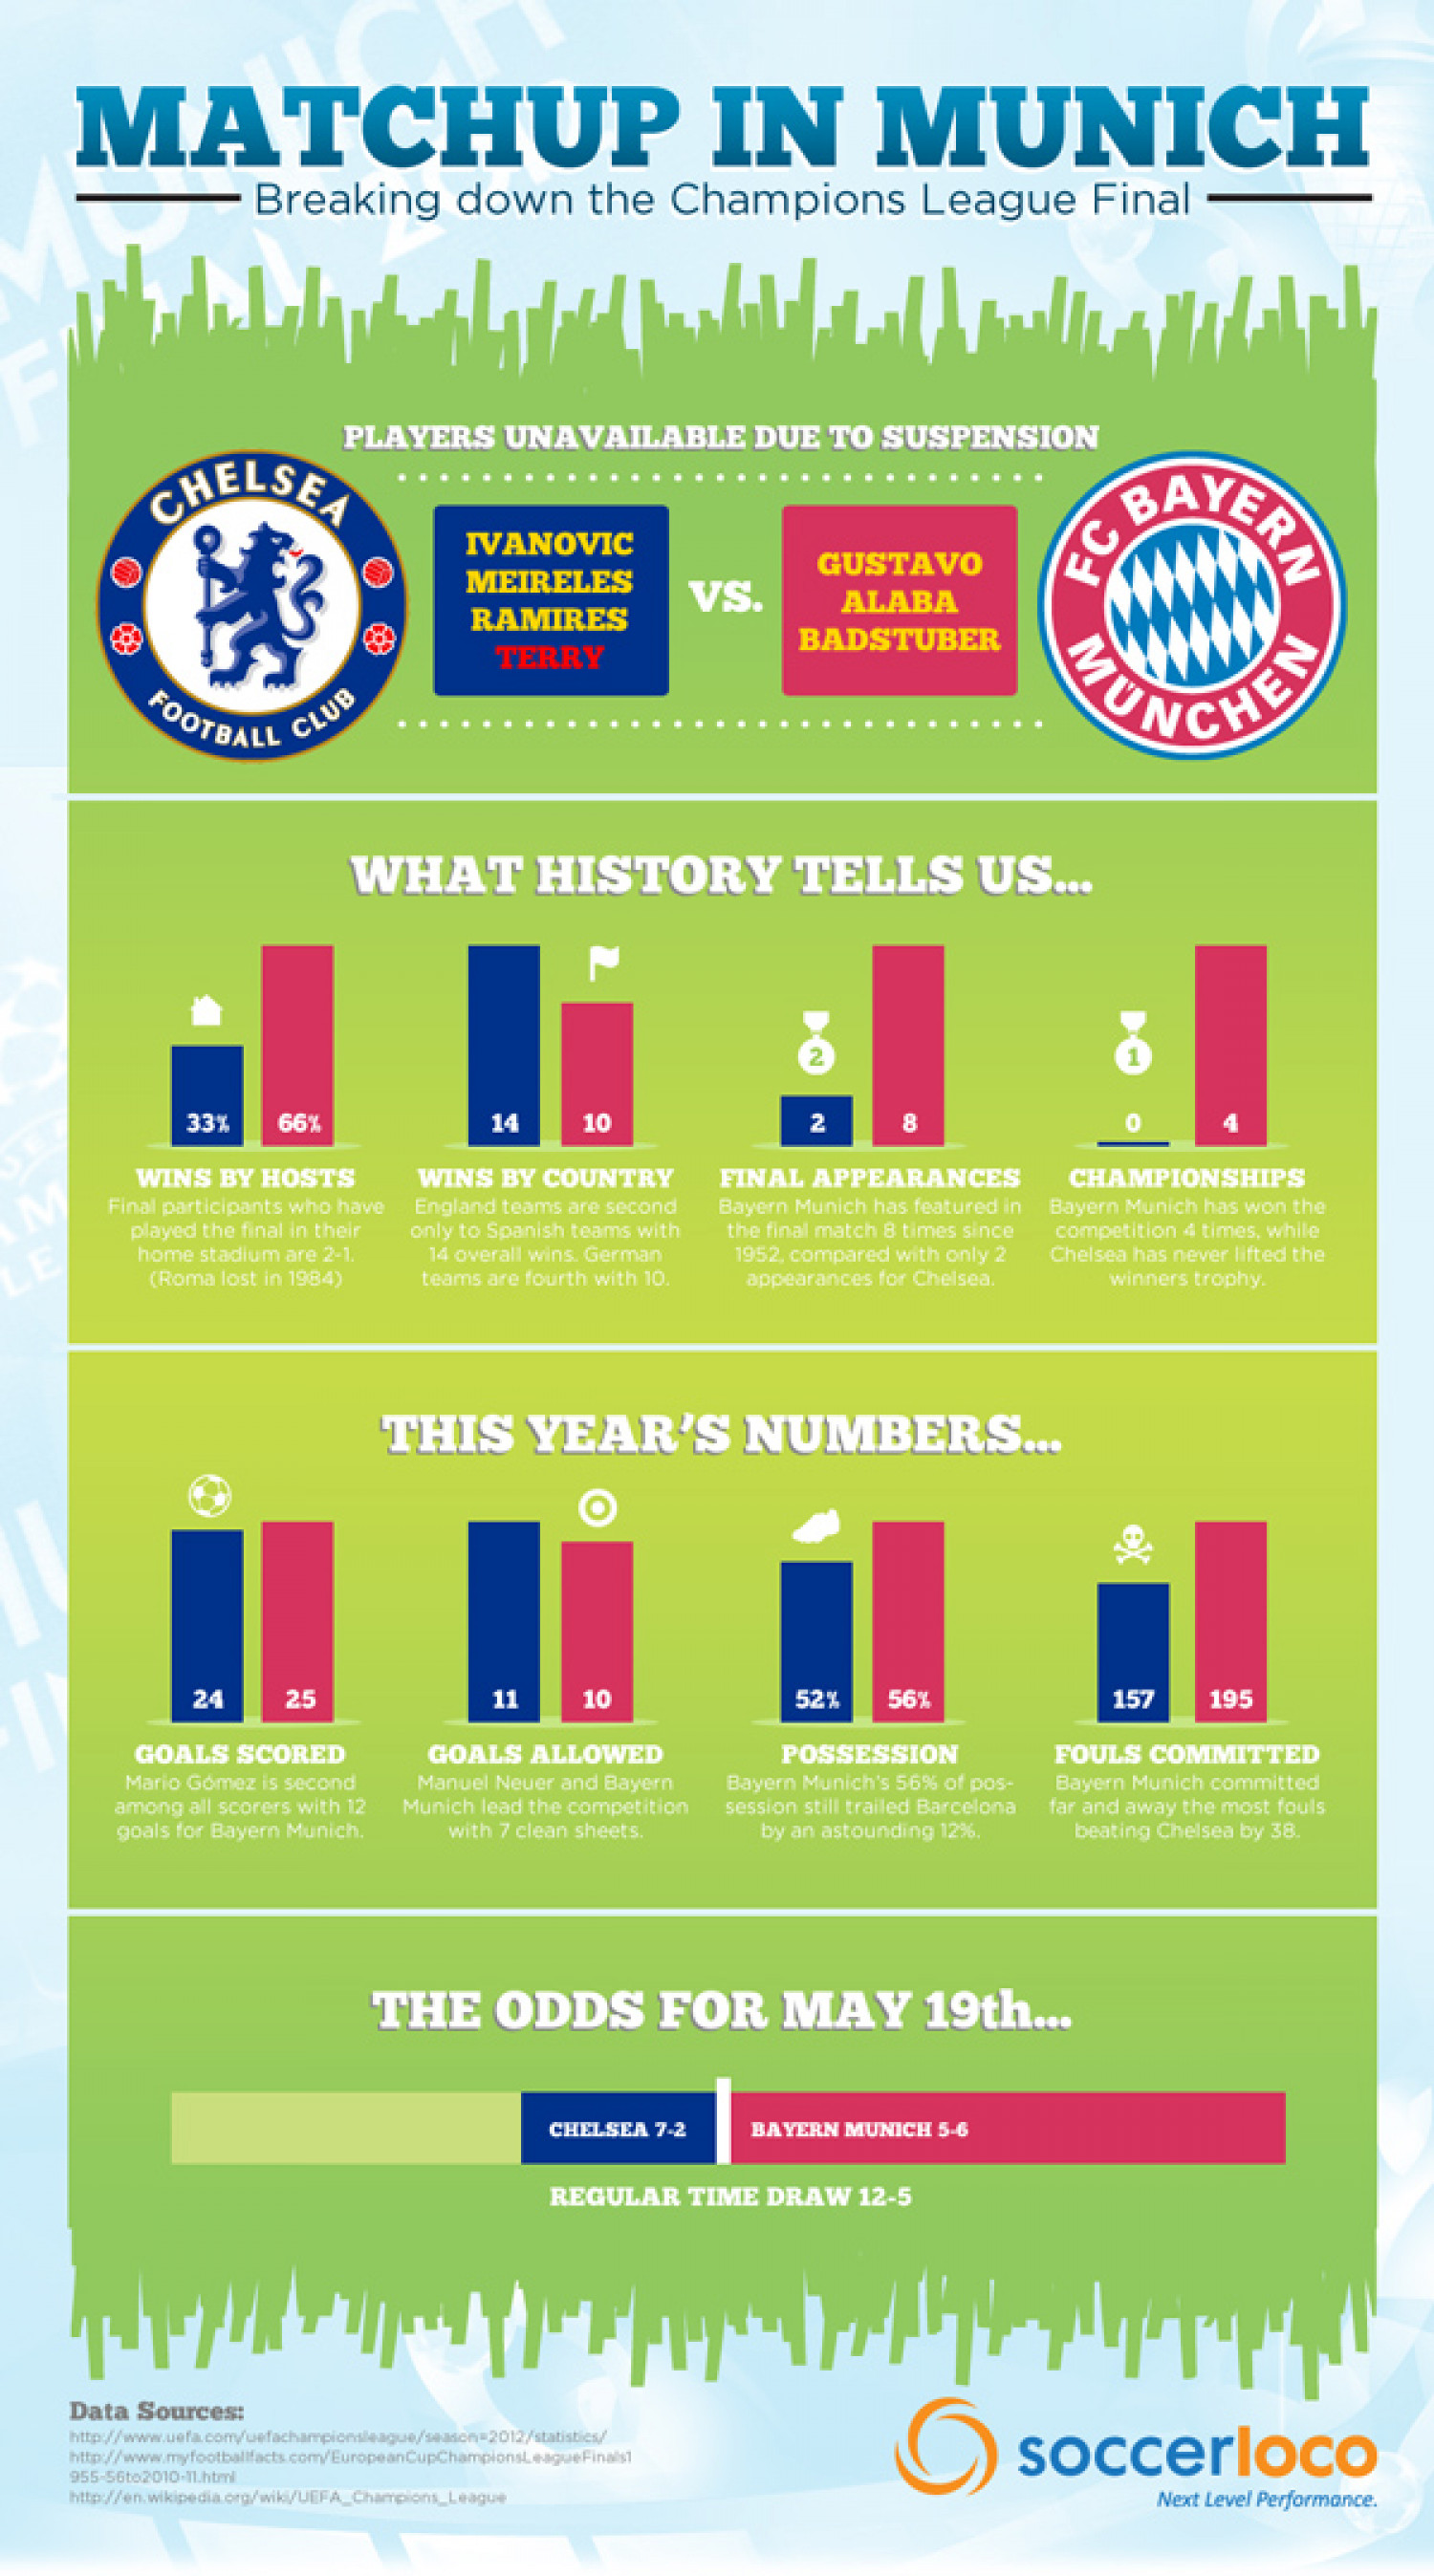 Matchup in Munich Infographic